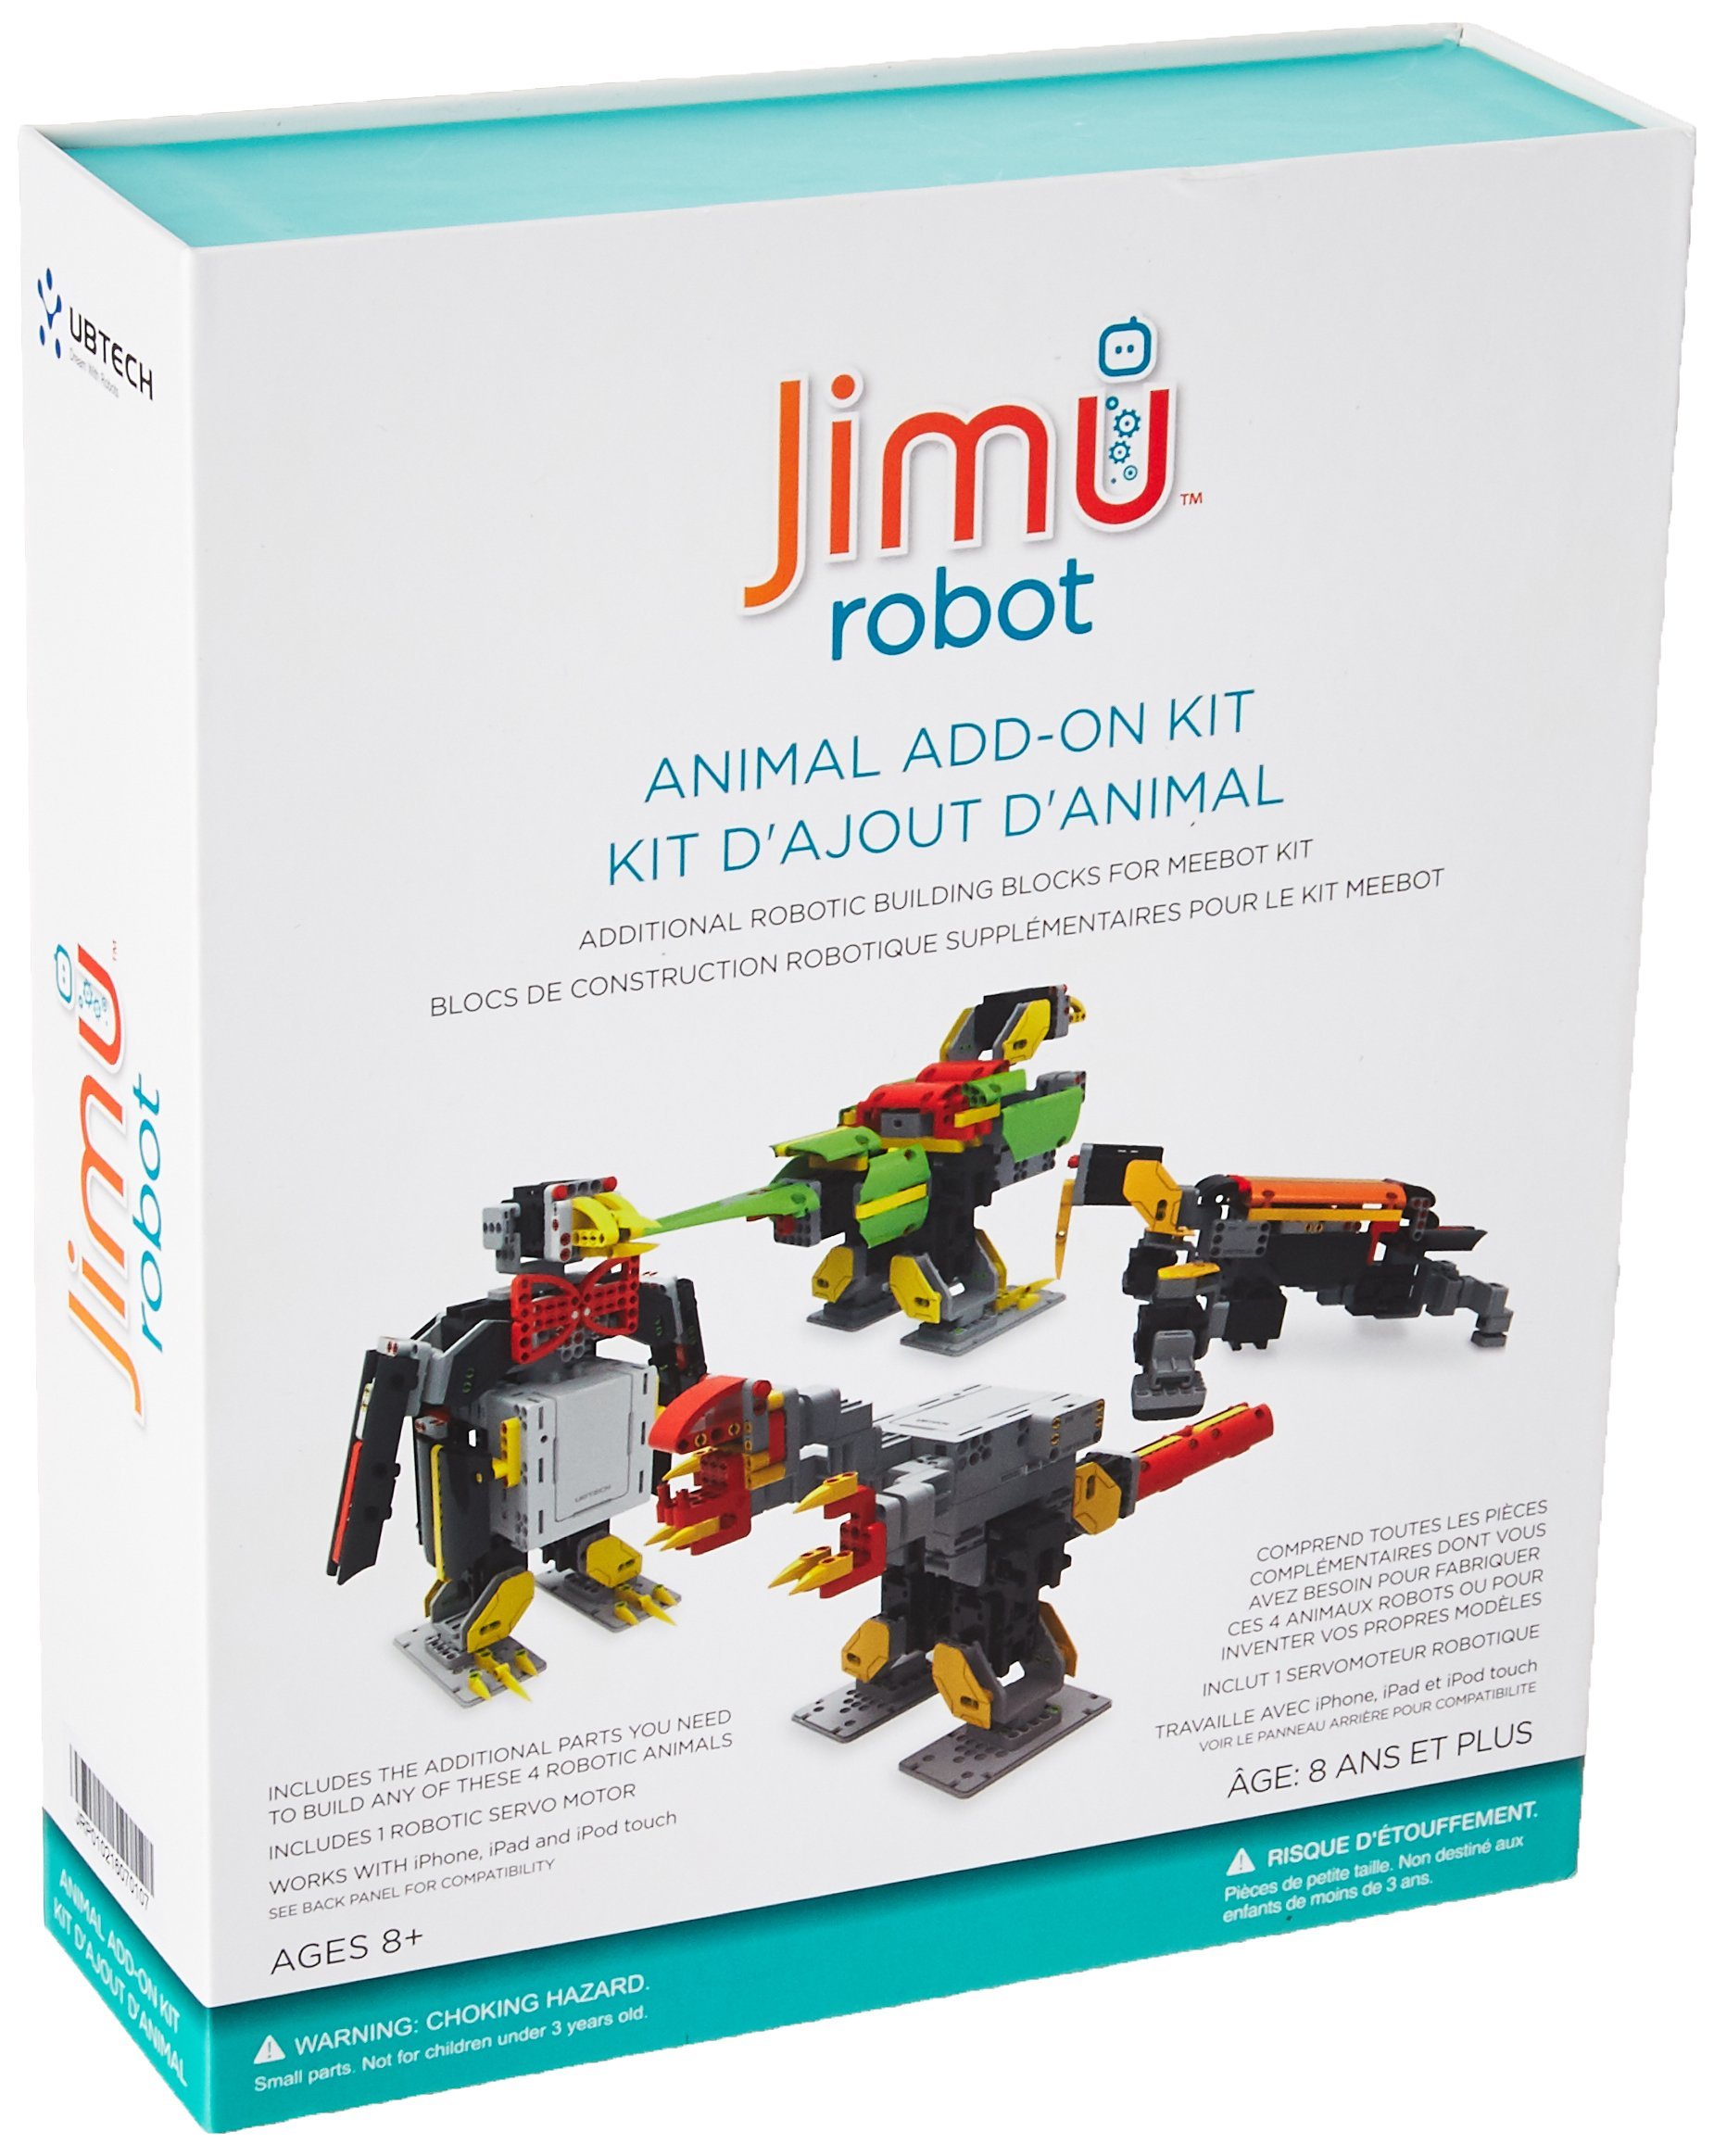 UBTECH JIMU Robot Animal Add On Kit - Digital Servo & Character Parts For All JIMU Robot Kits Building Kit (2016) by UBTECH (Image #1)